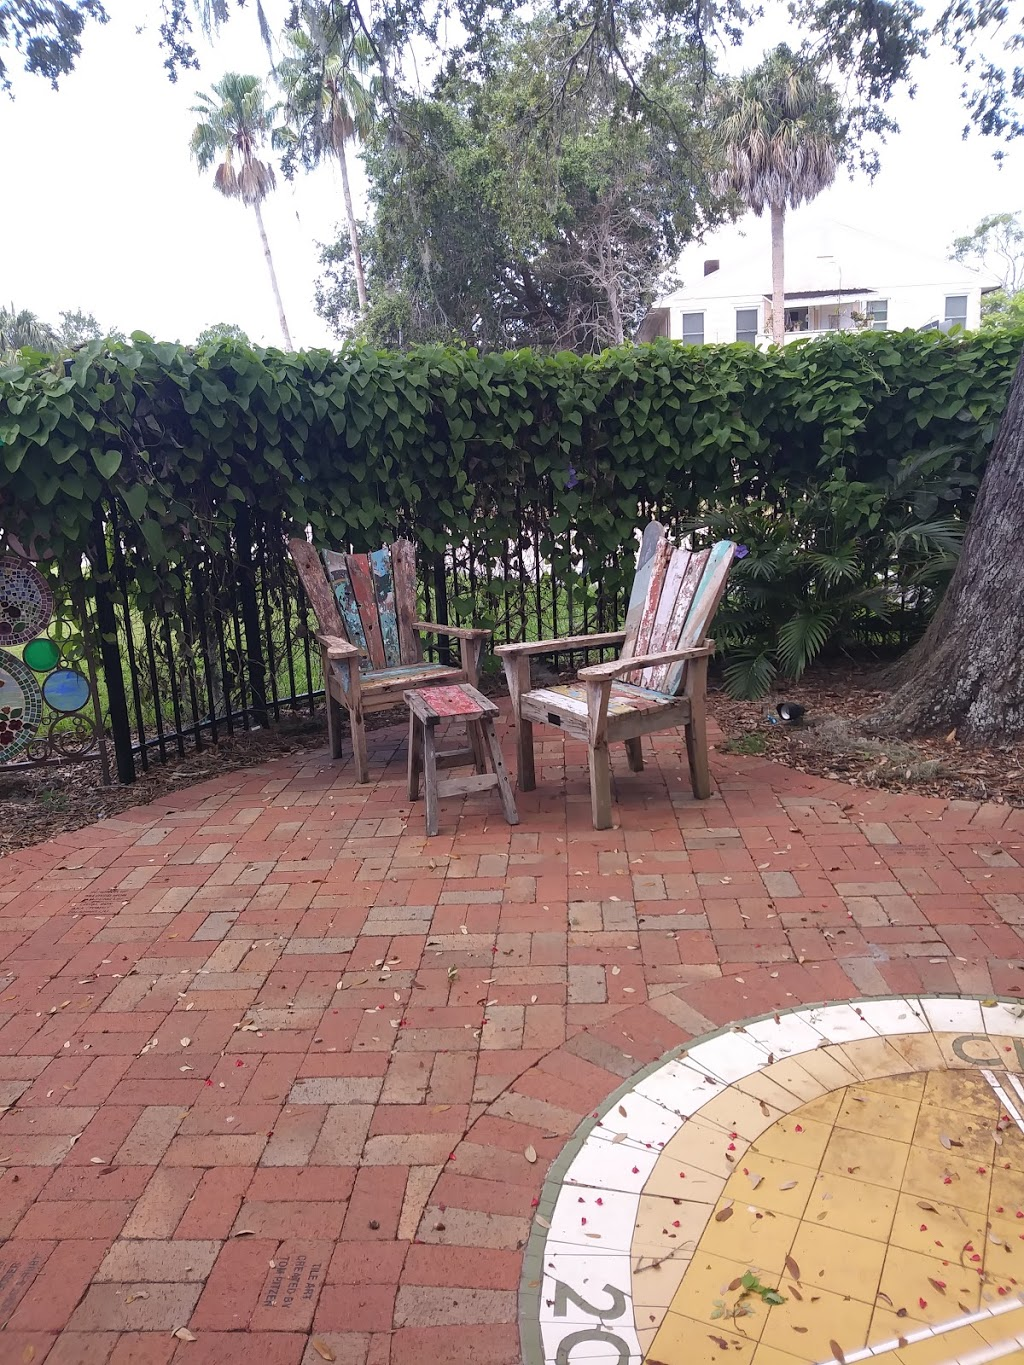 Gulfport Public Library - library    Photo 3 of 10   Address: 5501 28th Ave S, Gulfport, FL 33707, USA   Phone: (727) 893-1074